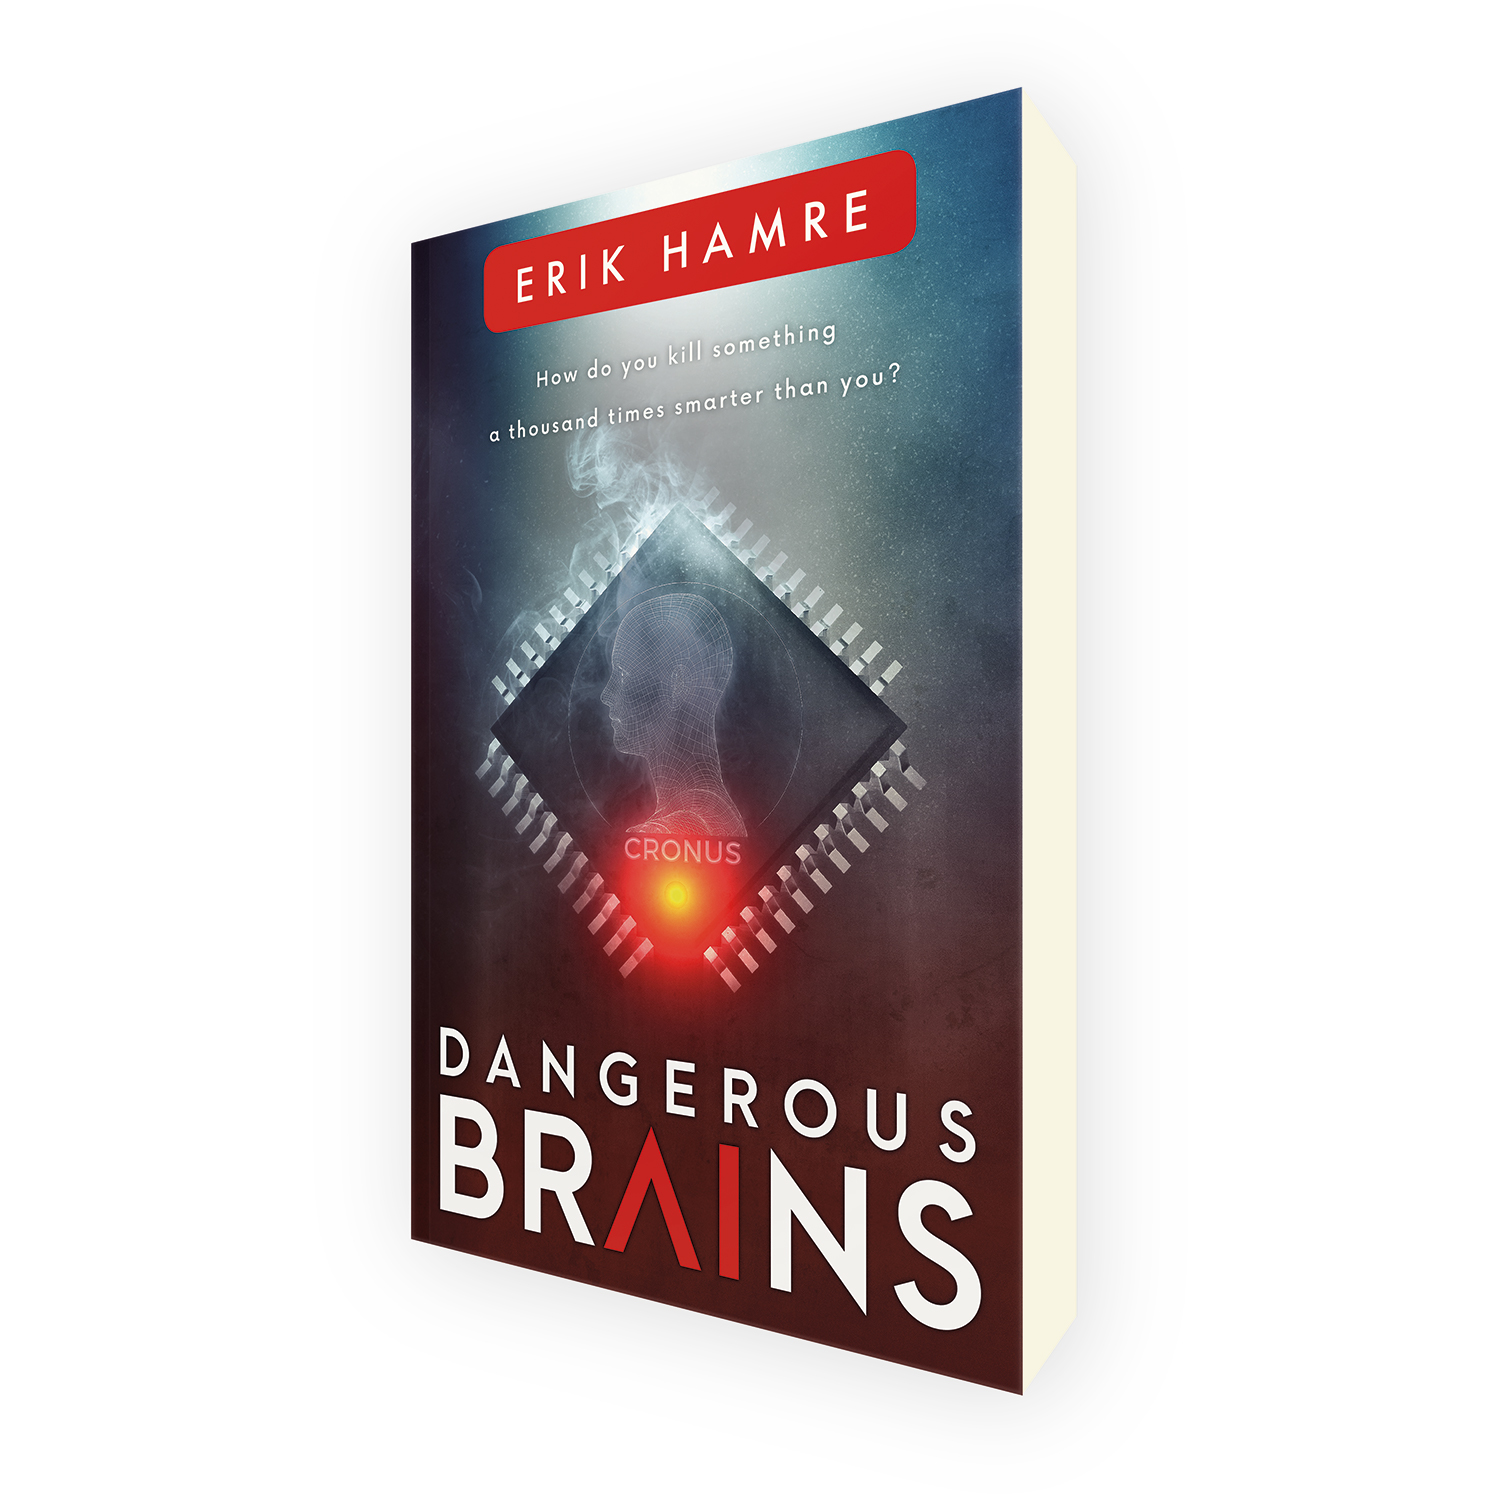 'Dangerous Brains' is a stylish military scifi cyber thriller, by Erik Hamre. The book cover was designed by Mark Thomas, of coverness.com. To find out more about my book design services, please visit www.coverness.com.